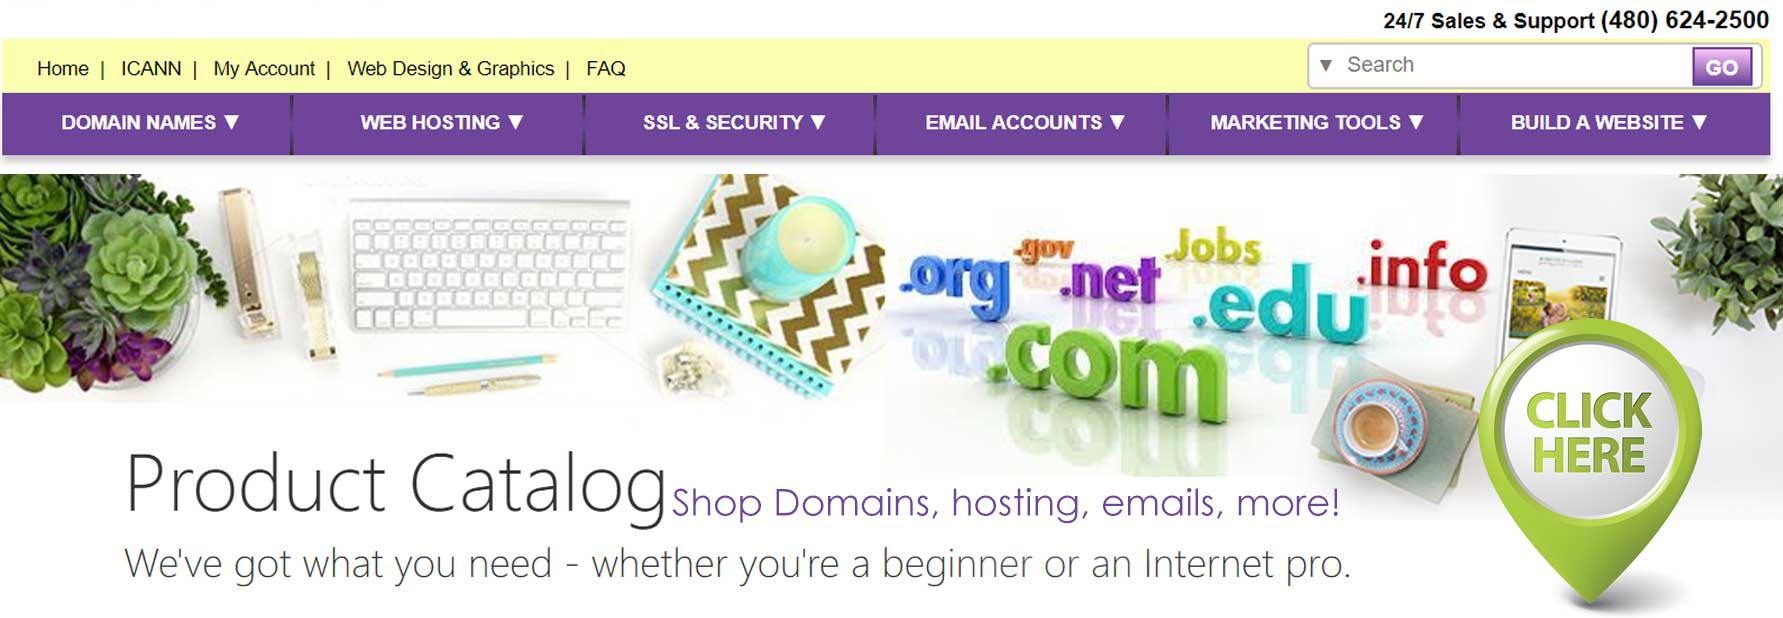 Product Catalog Domain Hosting Emails more